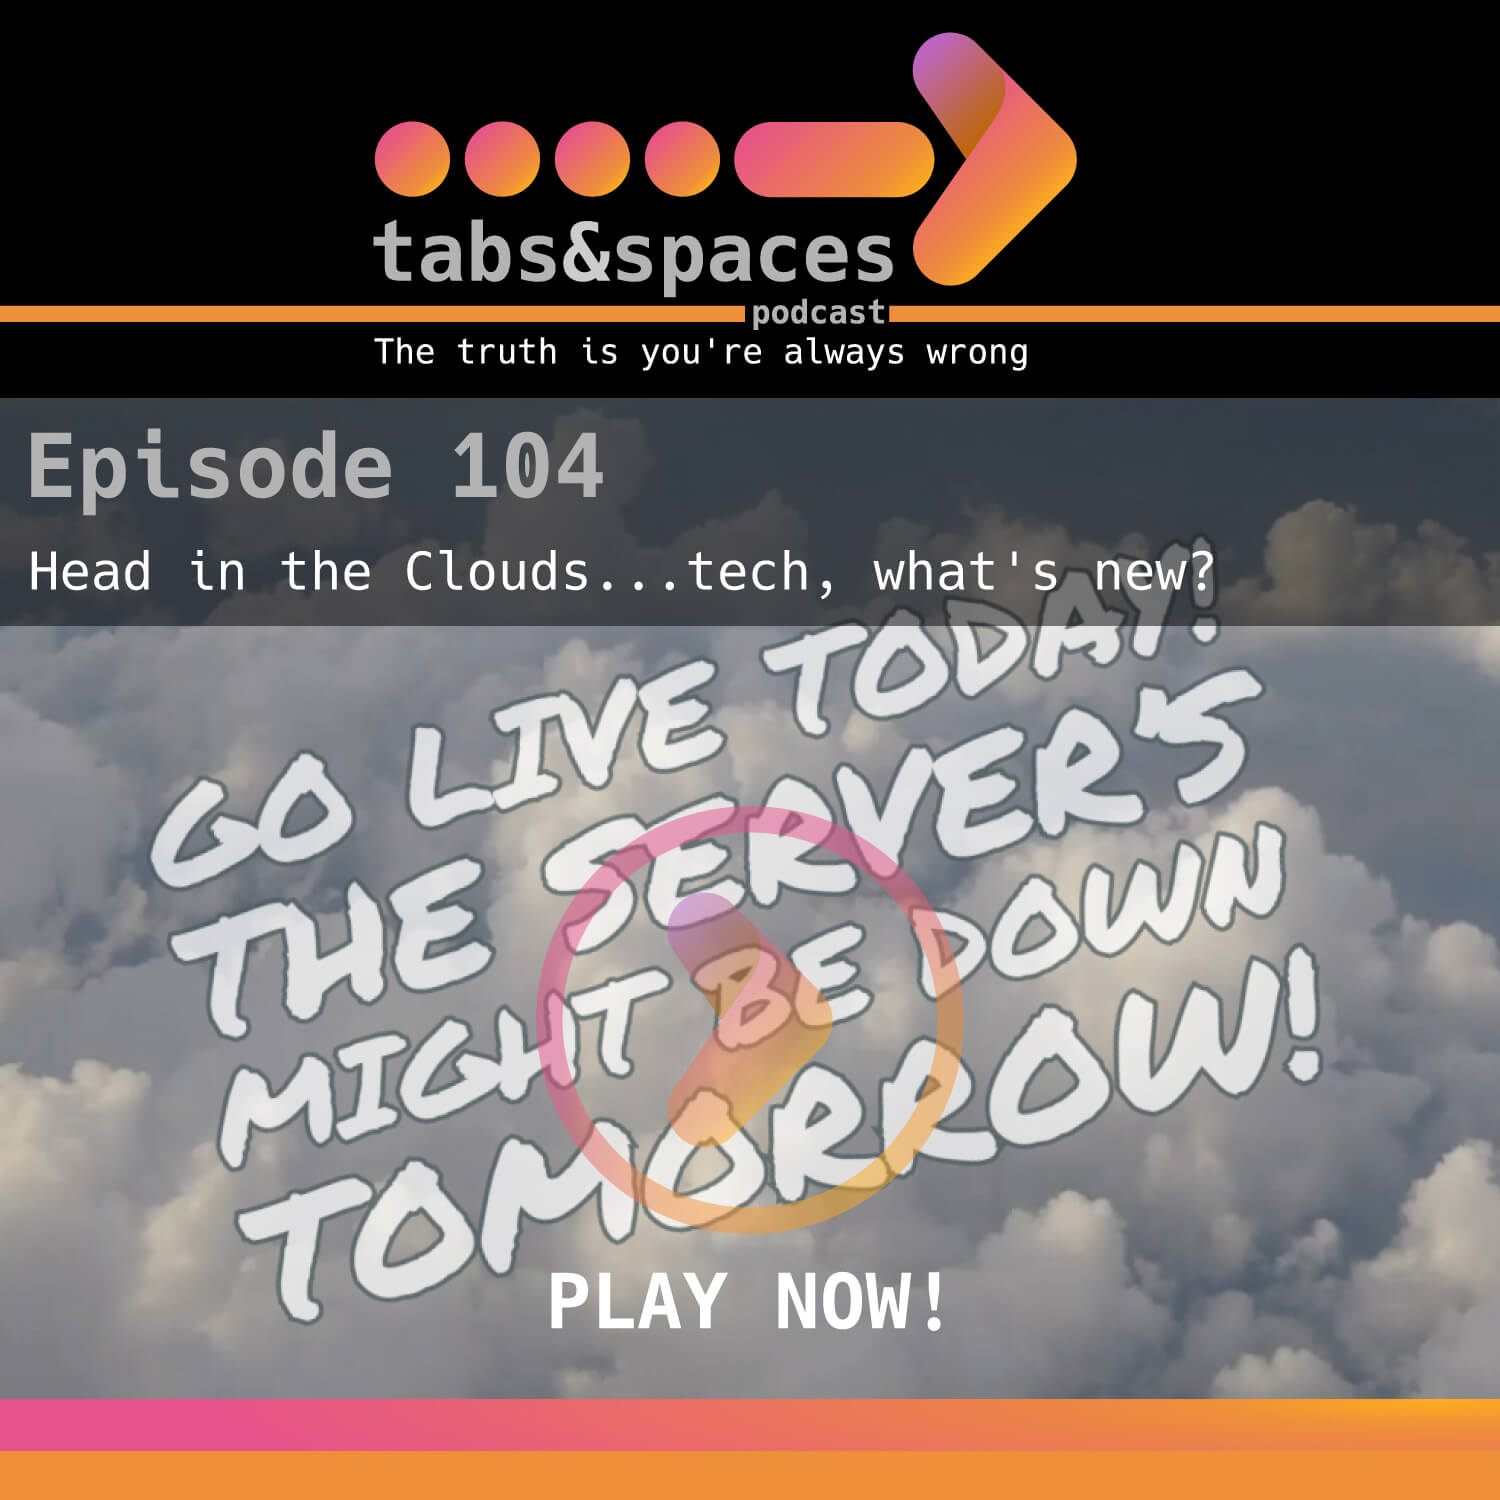 Episode 4 is about Cloud technologies and what they can and can't do for you